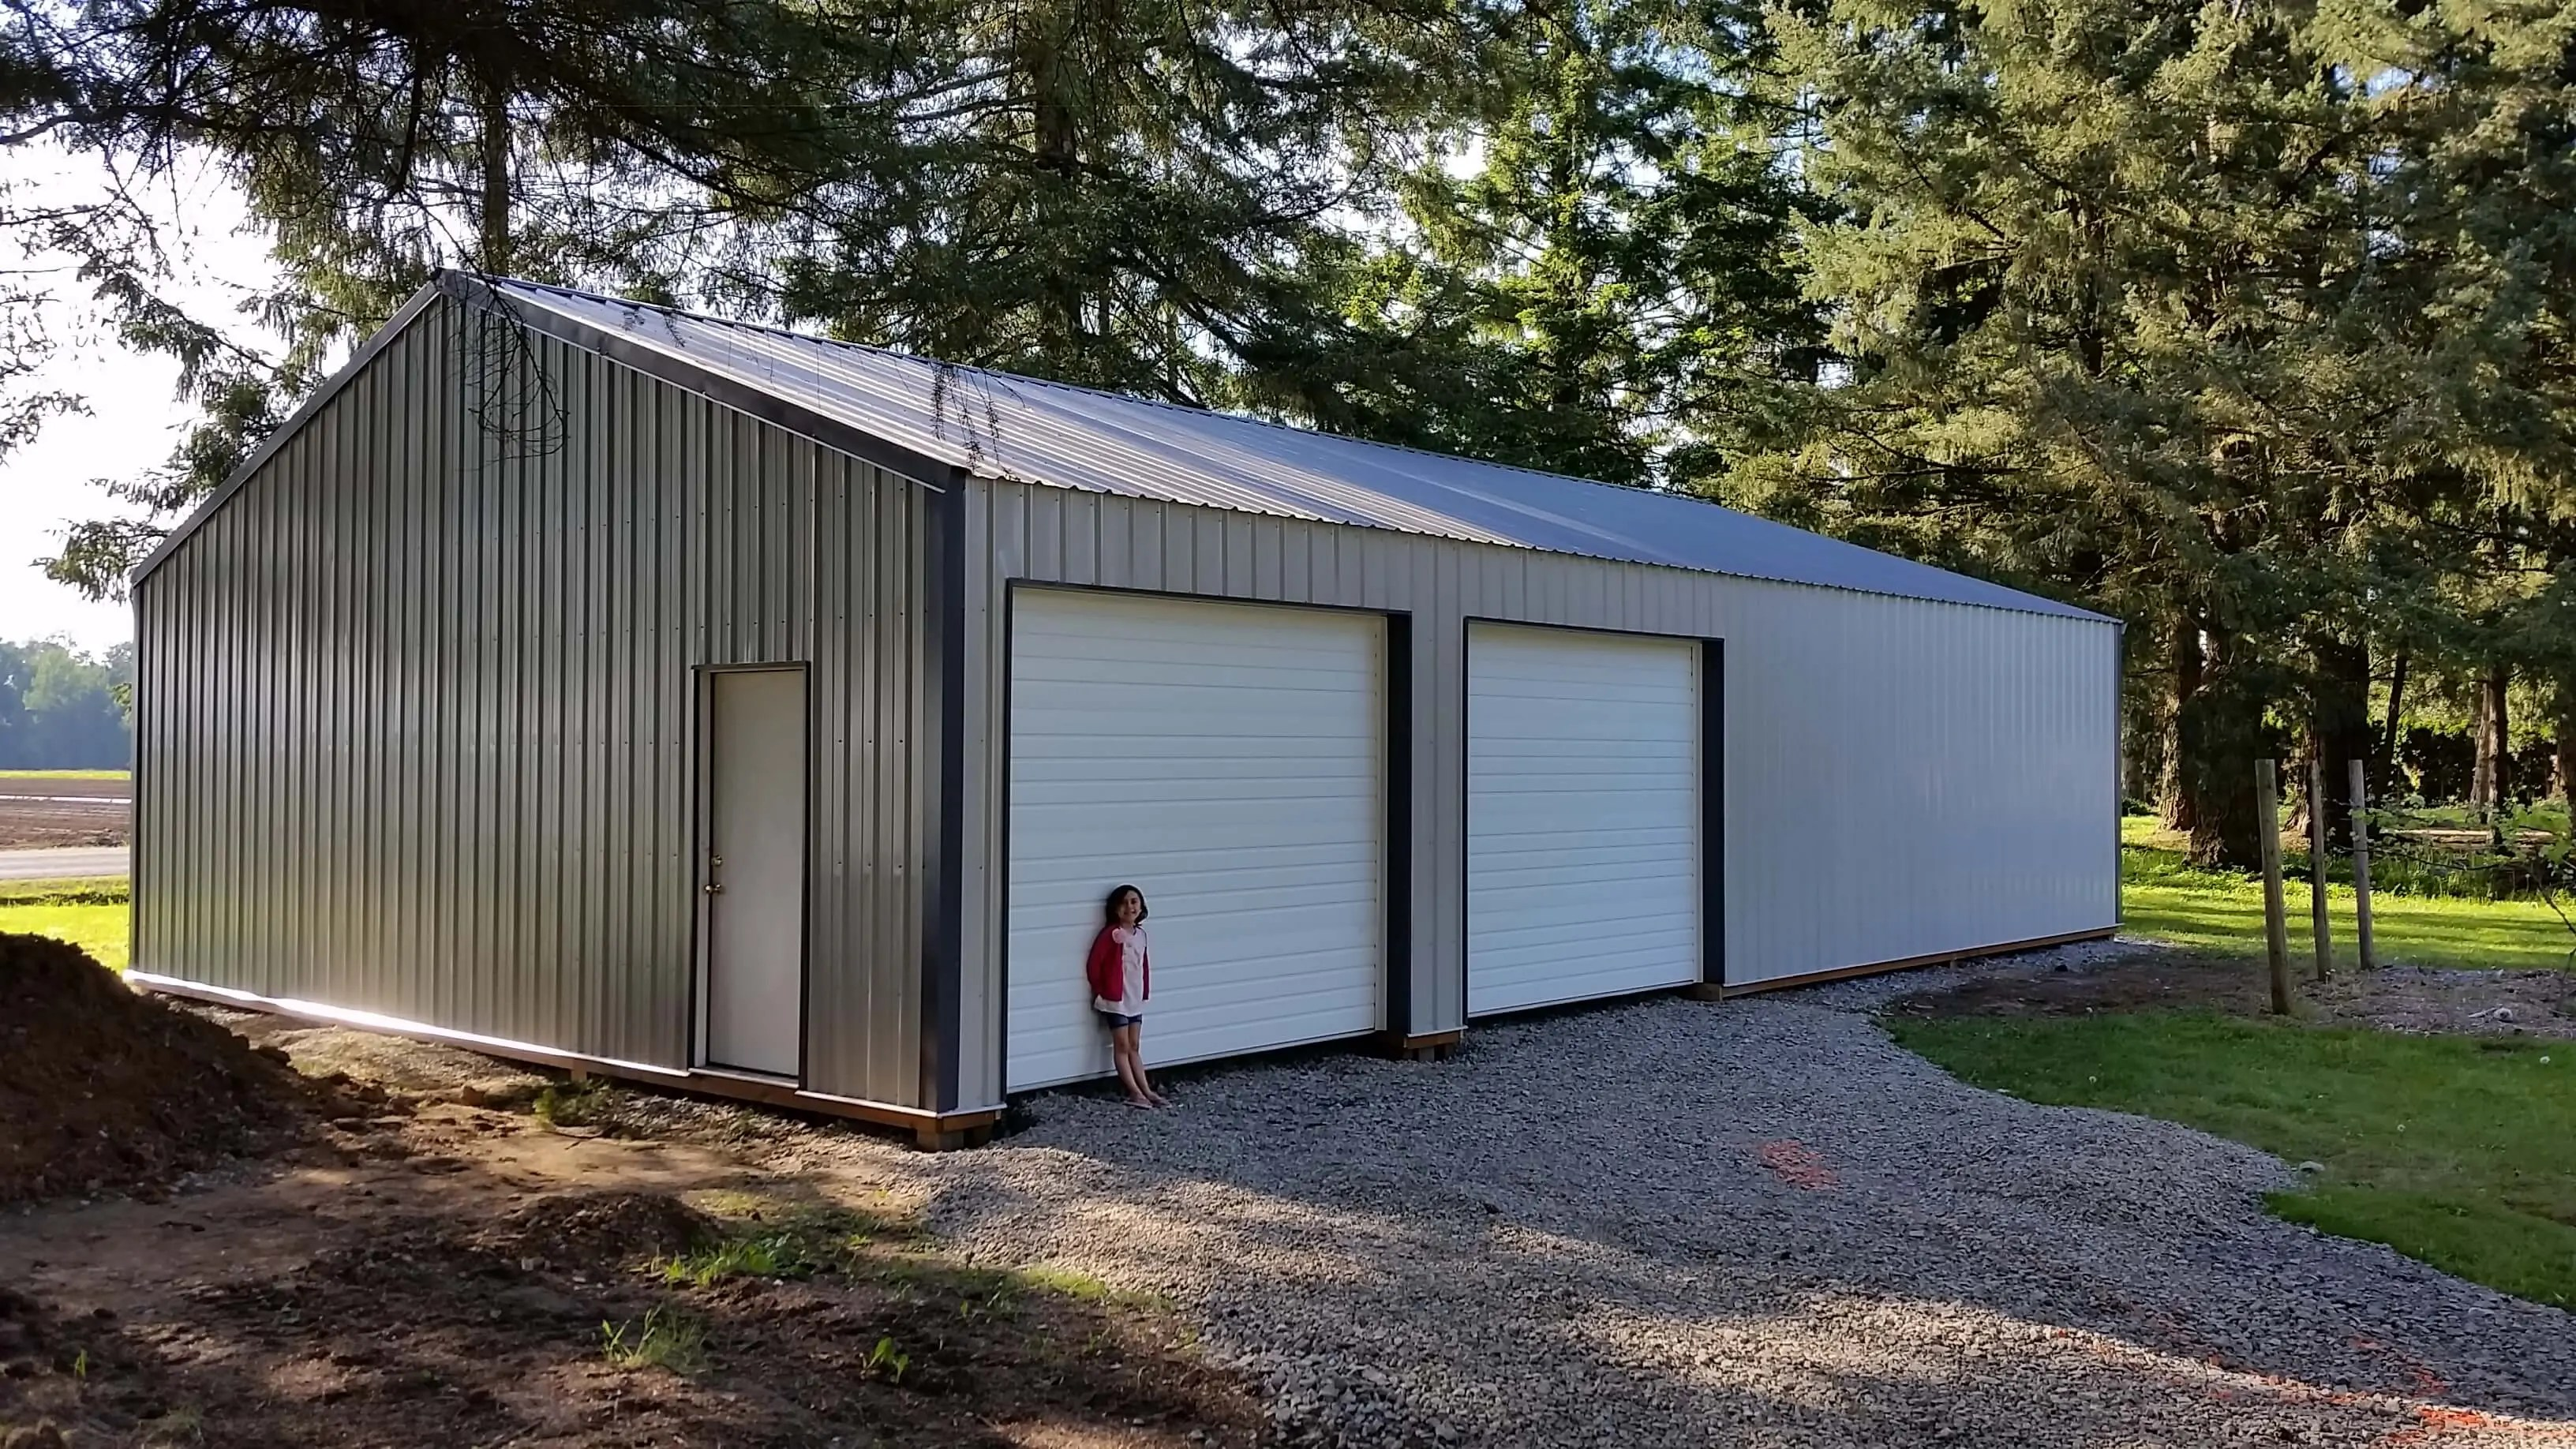 UPDATED 2018) How Much Does A Pole Barn Cost Per Square Foot on 2 car garage, best paint for inside garage, ultimate garage, building a garage,